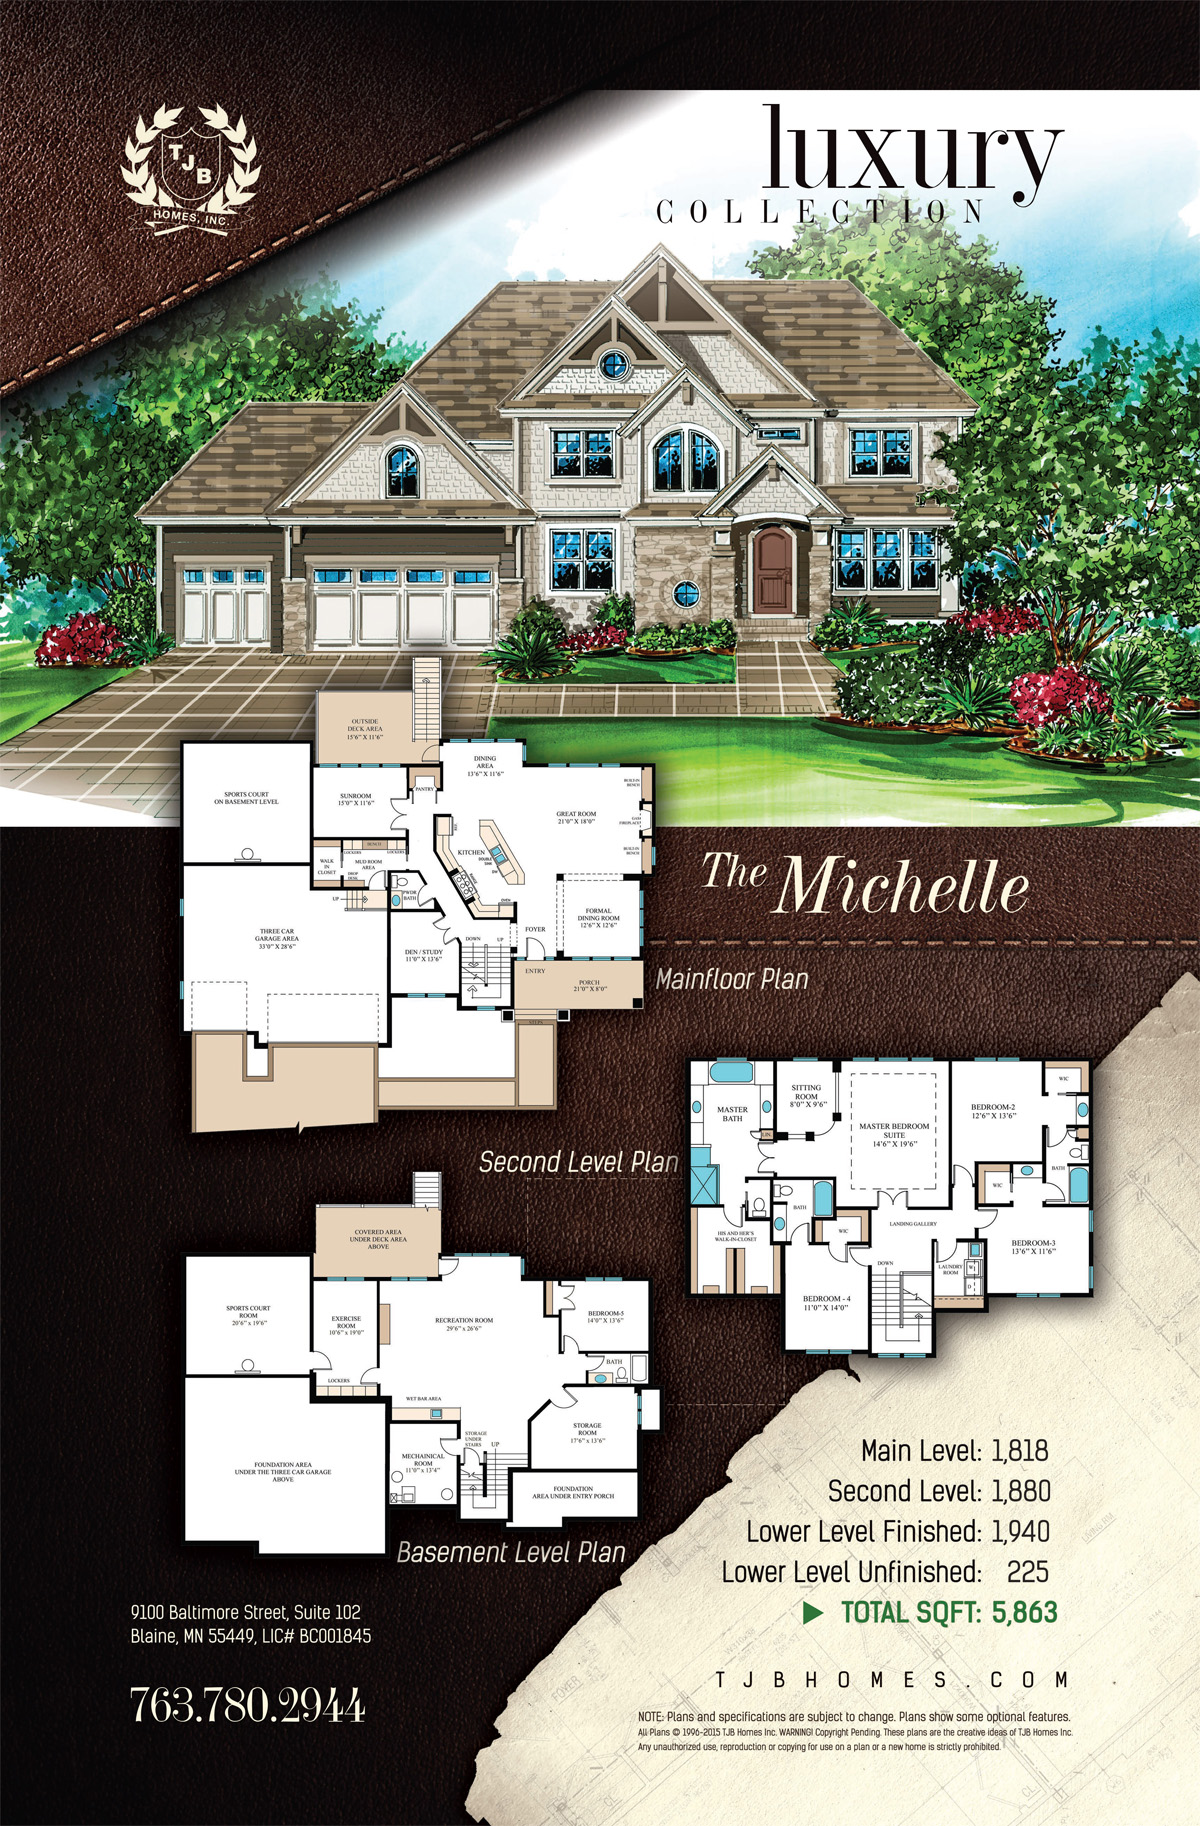 Luxury Collection Home Plans - The Michelle